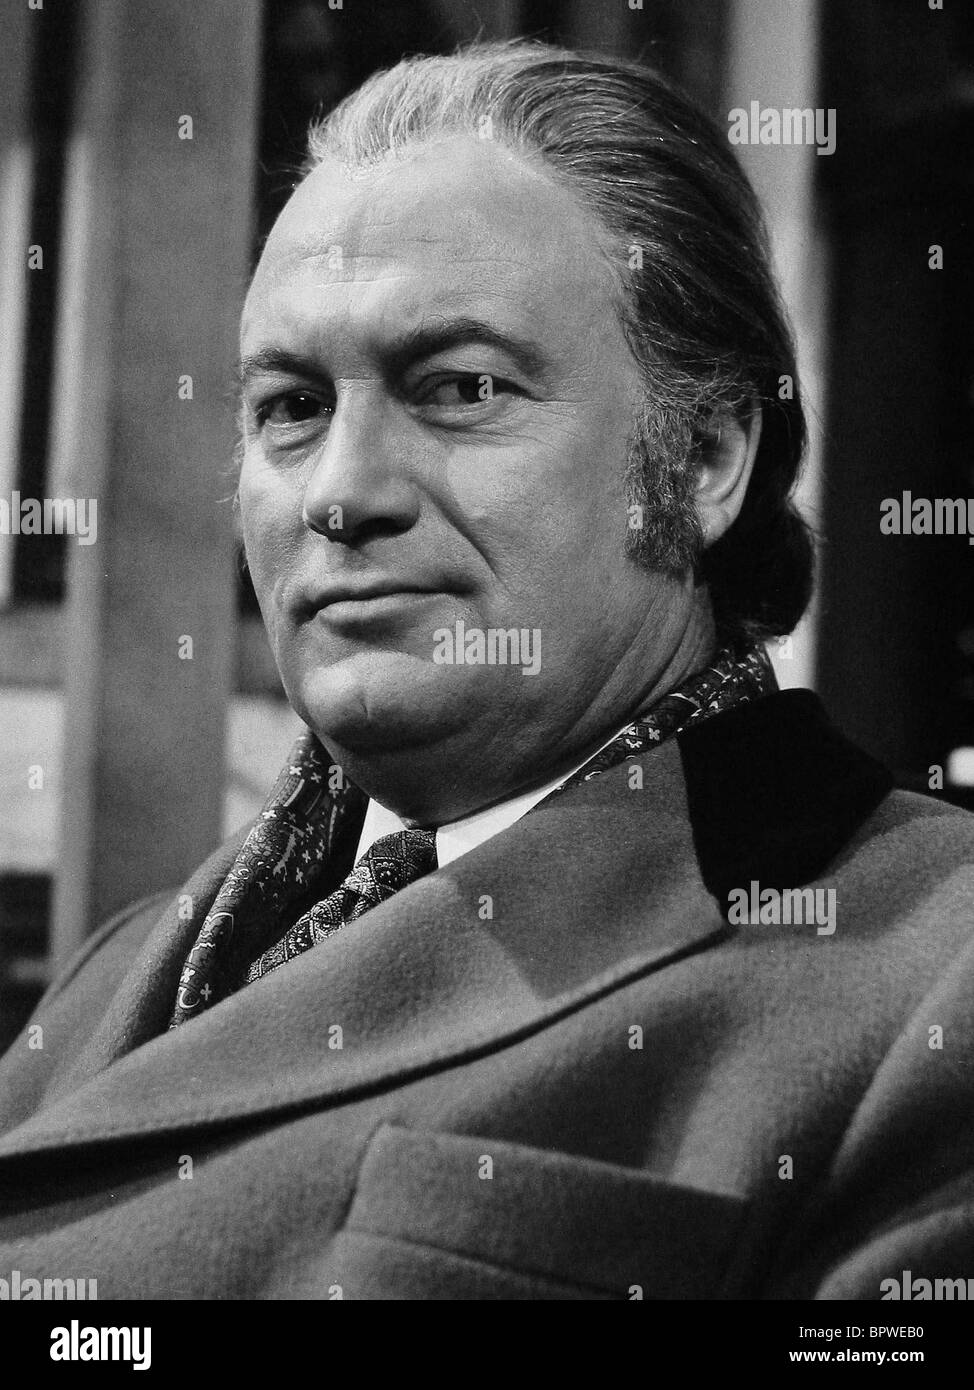 IAIN CUTHBERTSON ACTOR (1979) - Stock Image